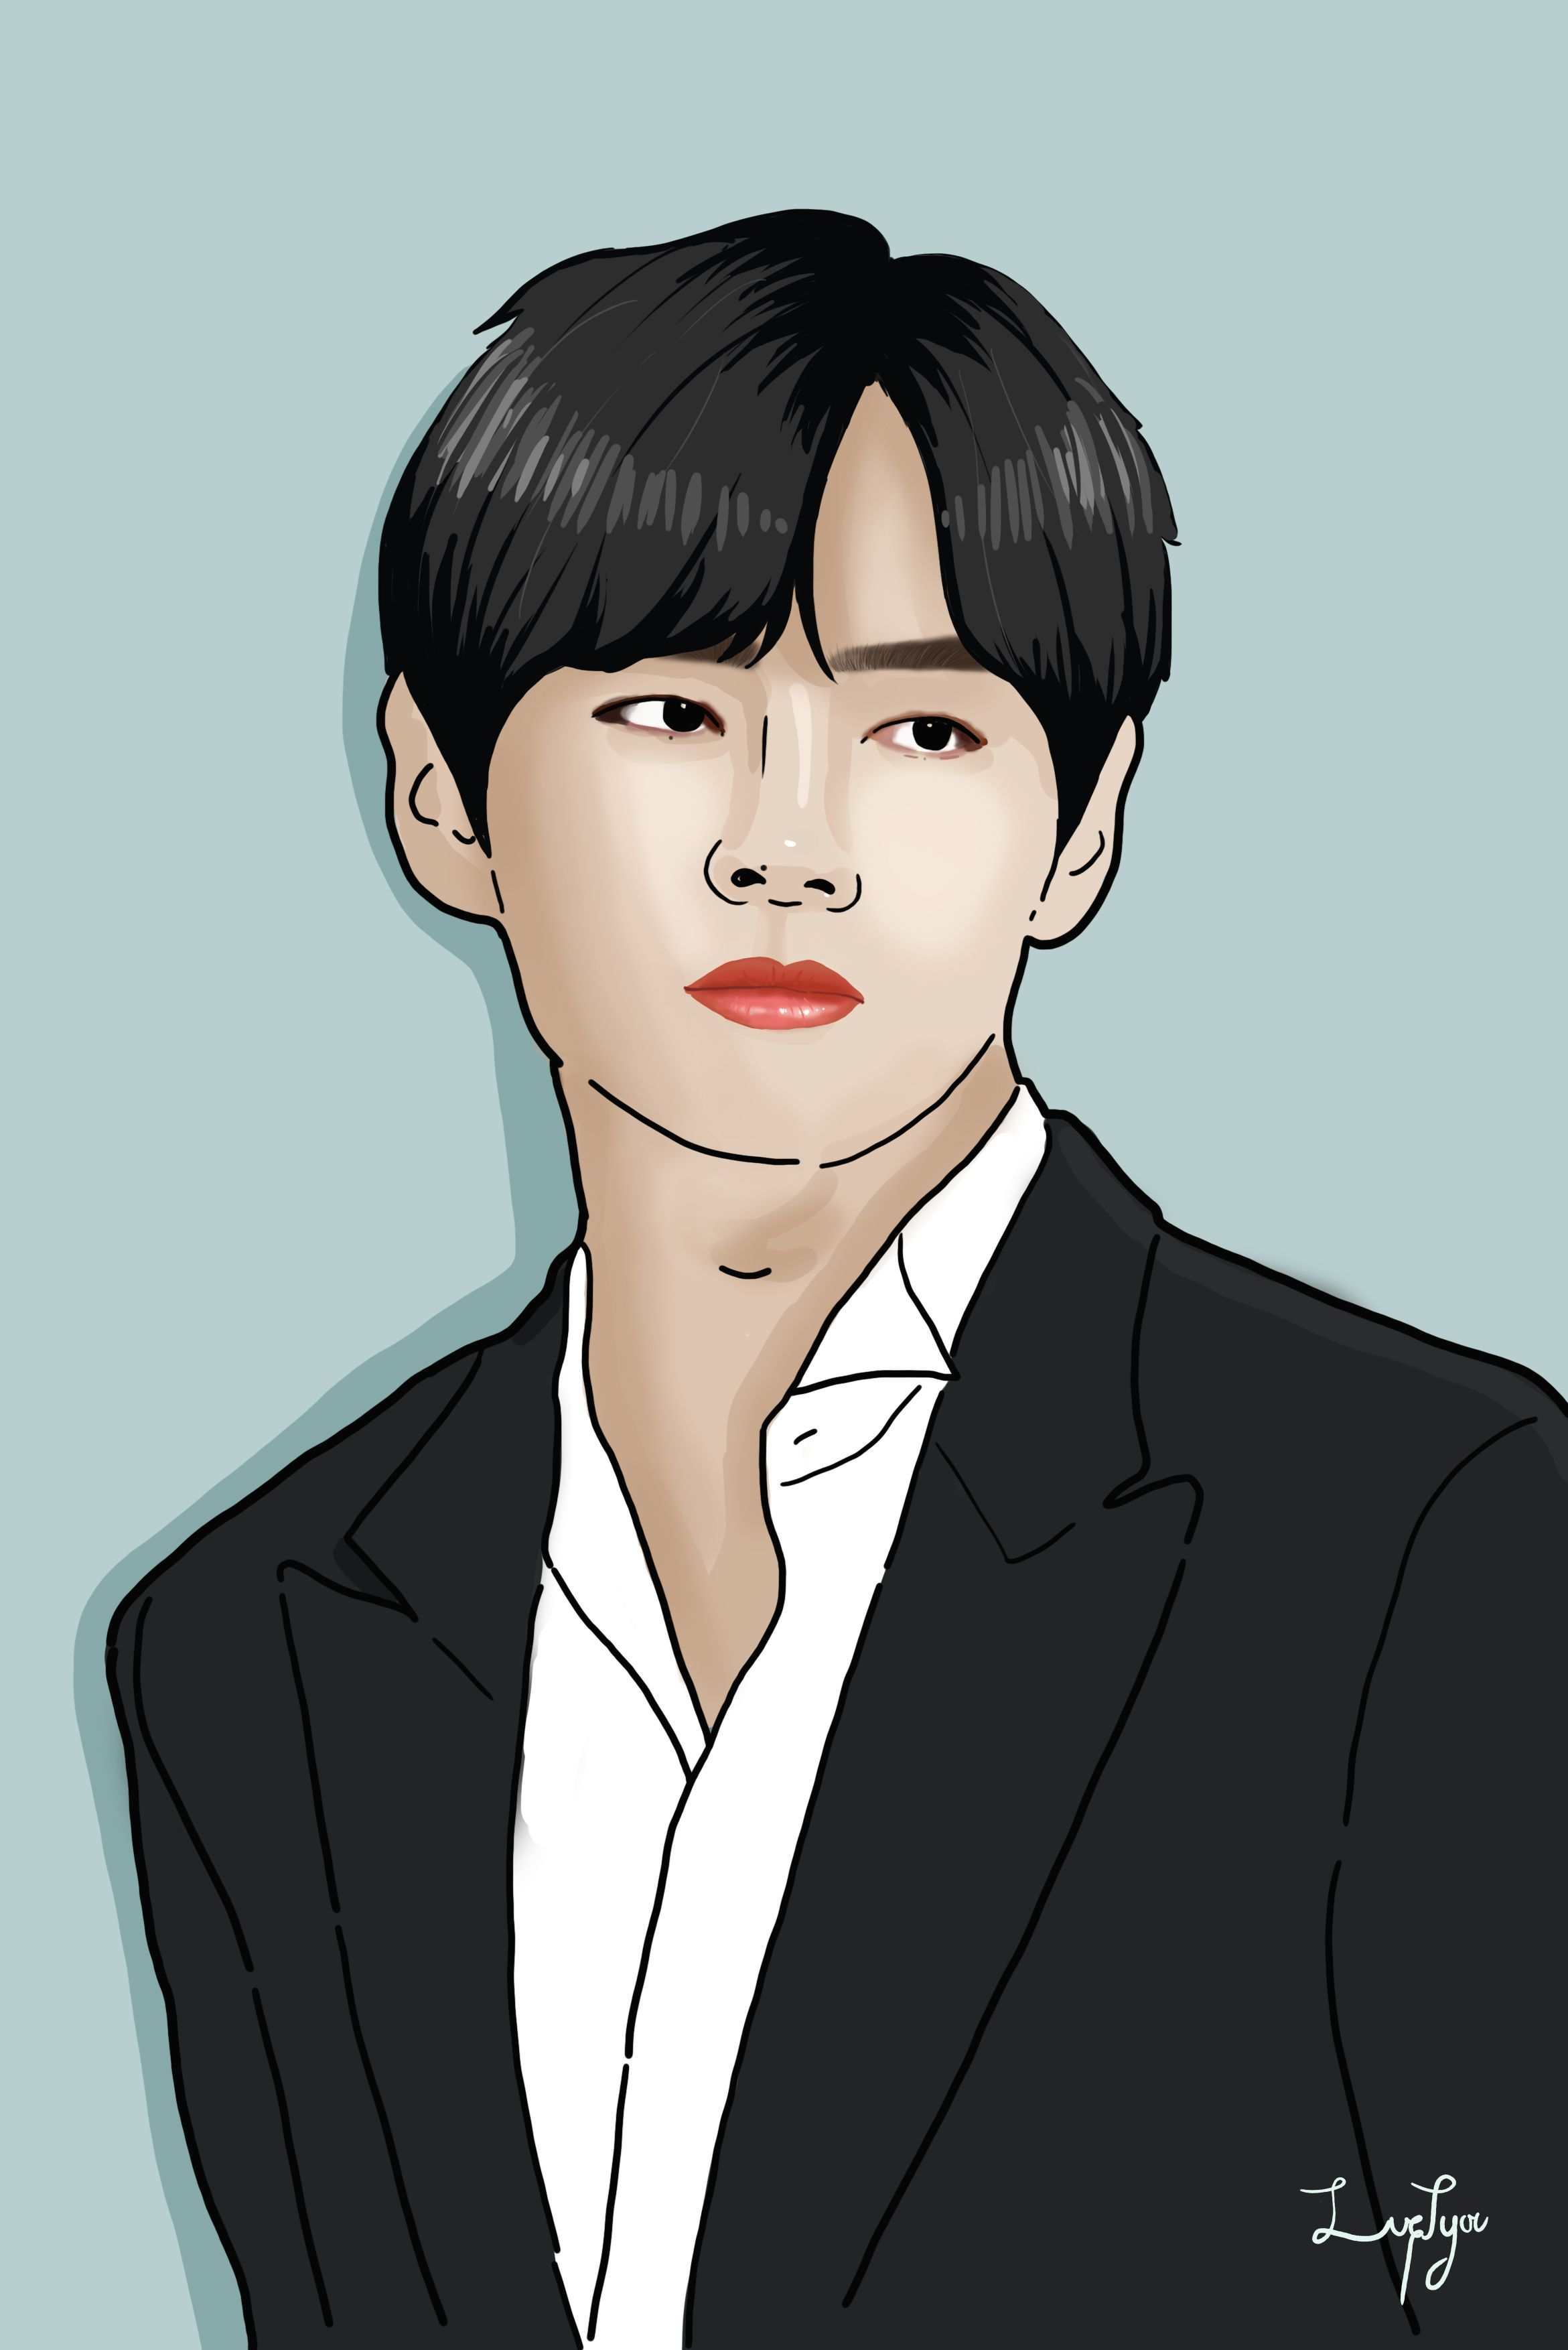 Bts Kim Tae Hyung Illustration Vector Portrait Illustration Diy Canvas Art Painting Diy Canvas Art